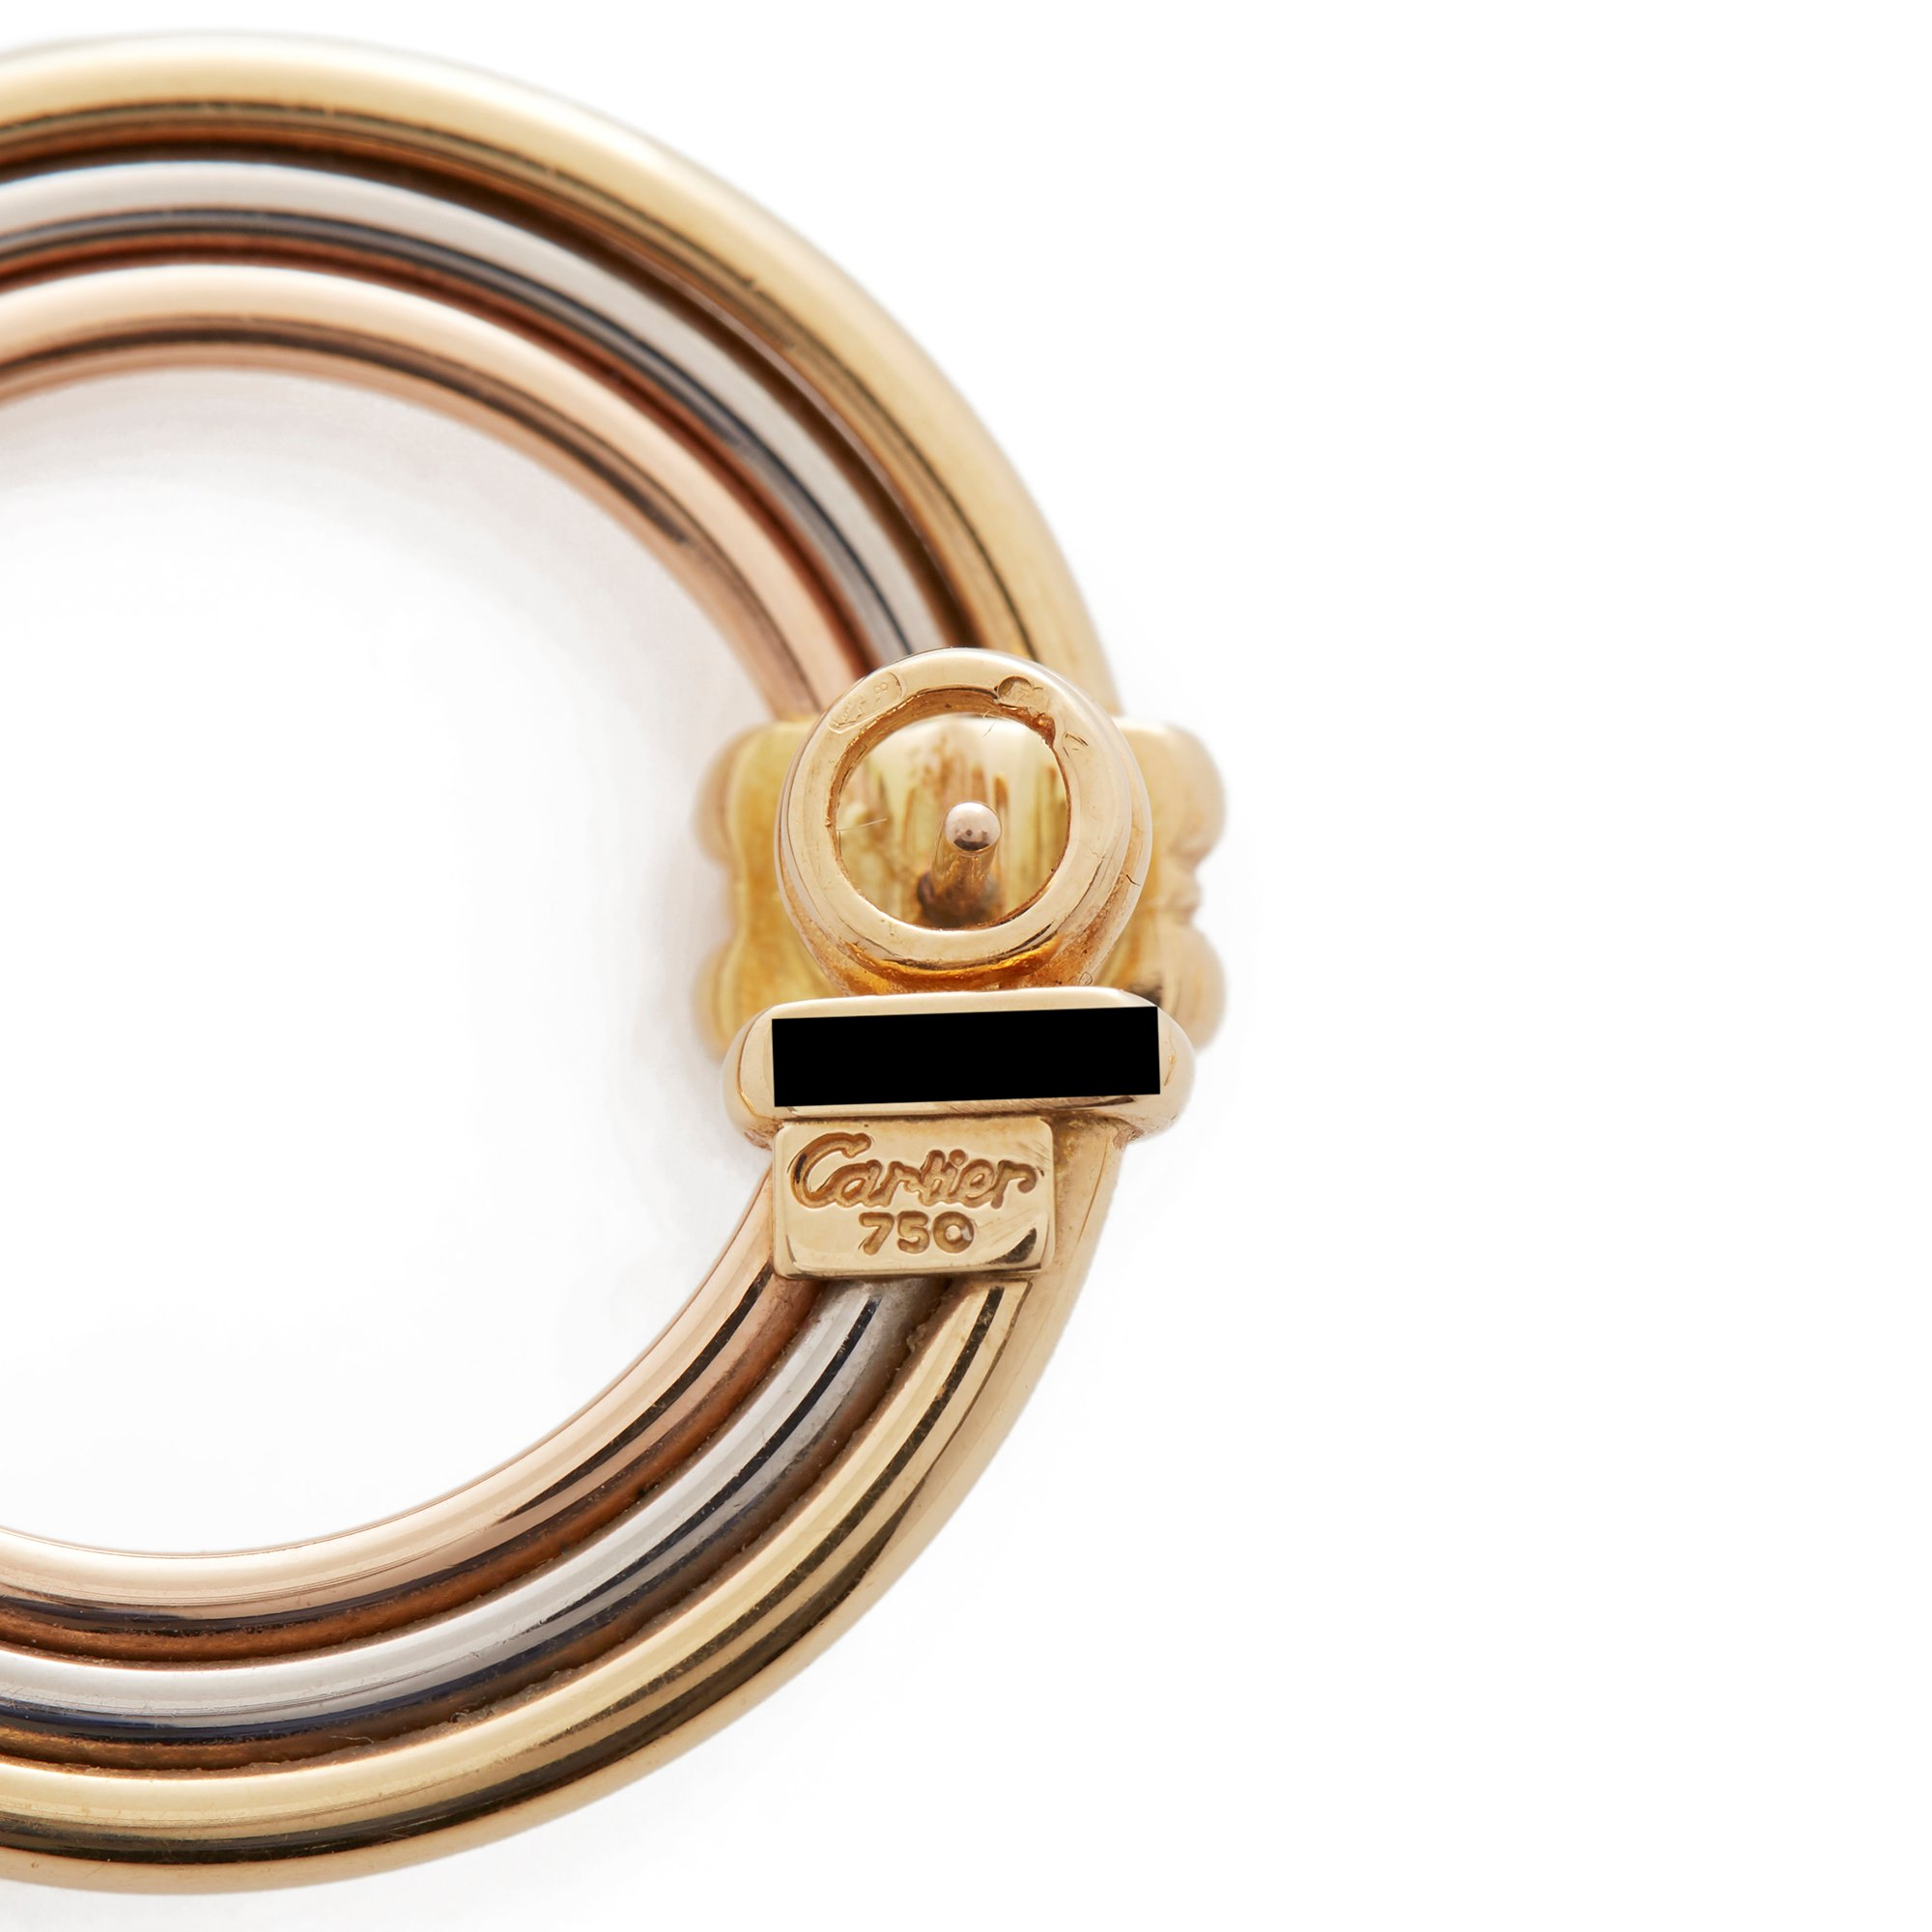 Cartier 18k Yellow, White & Rose Gold Magnolia Hoop Earrings